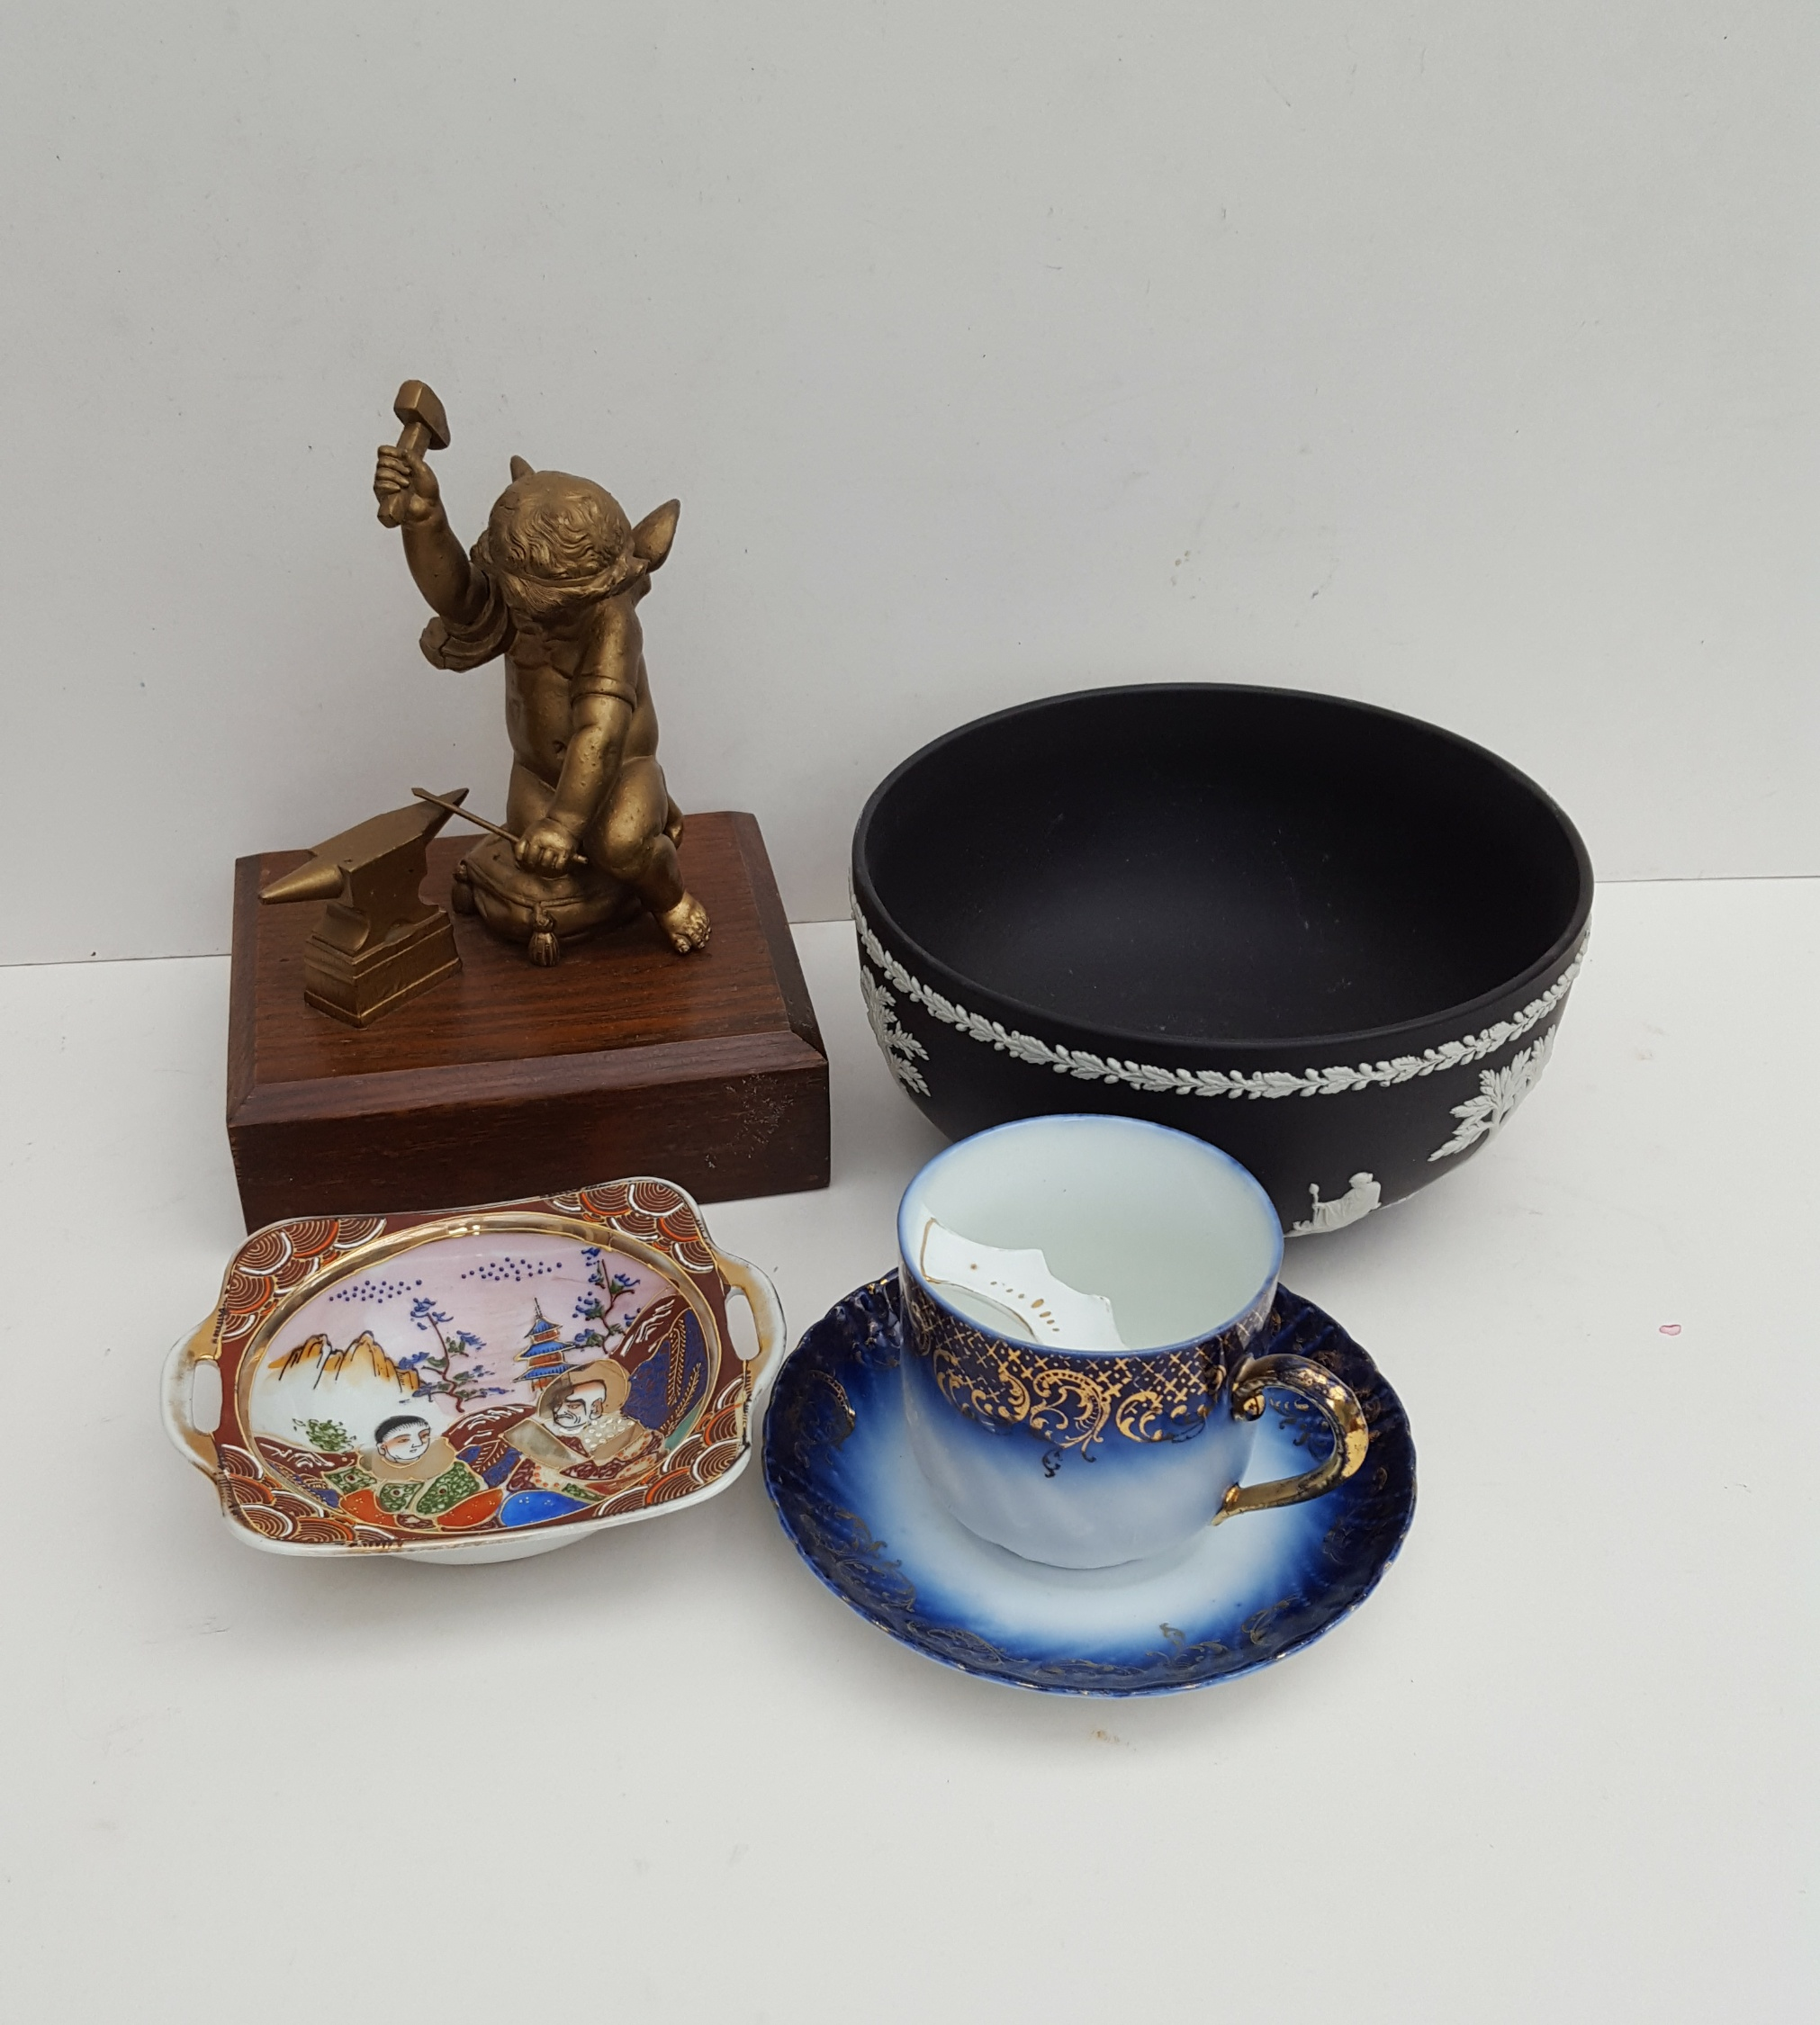 Lot 37 - Vintage Retro Items Black Wedgwood Jasper Bowl Flow Blue Moustache Cup & Brass Figure NO RESERVE